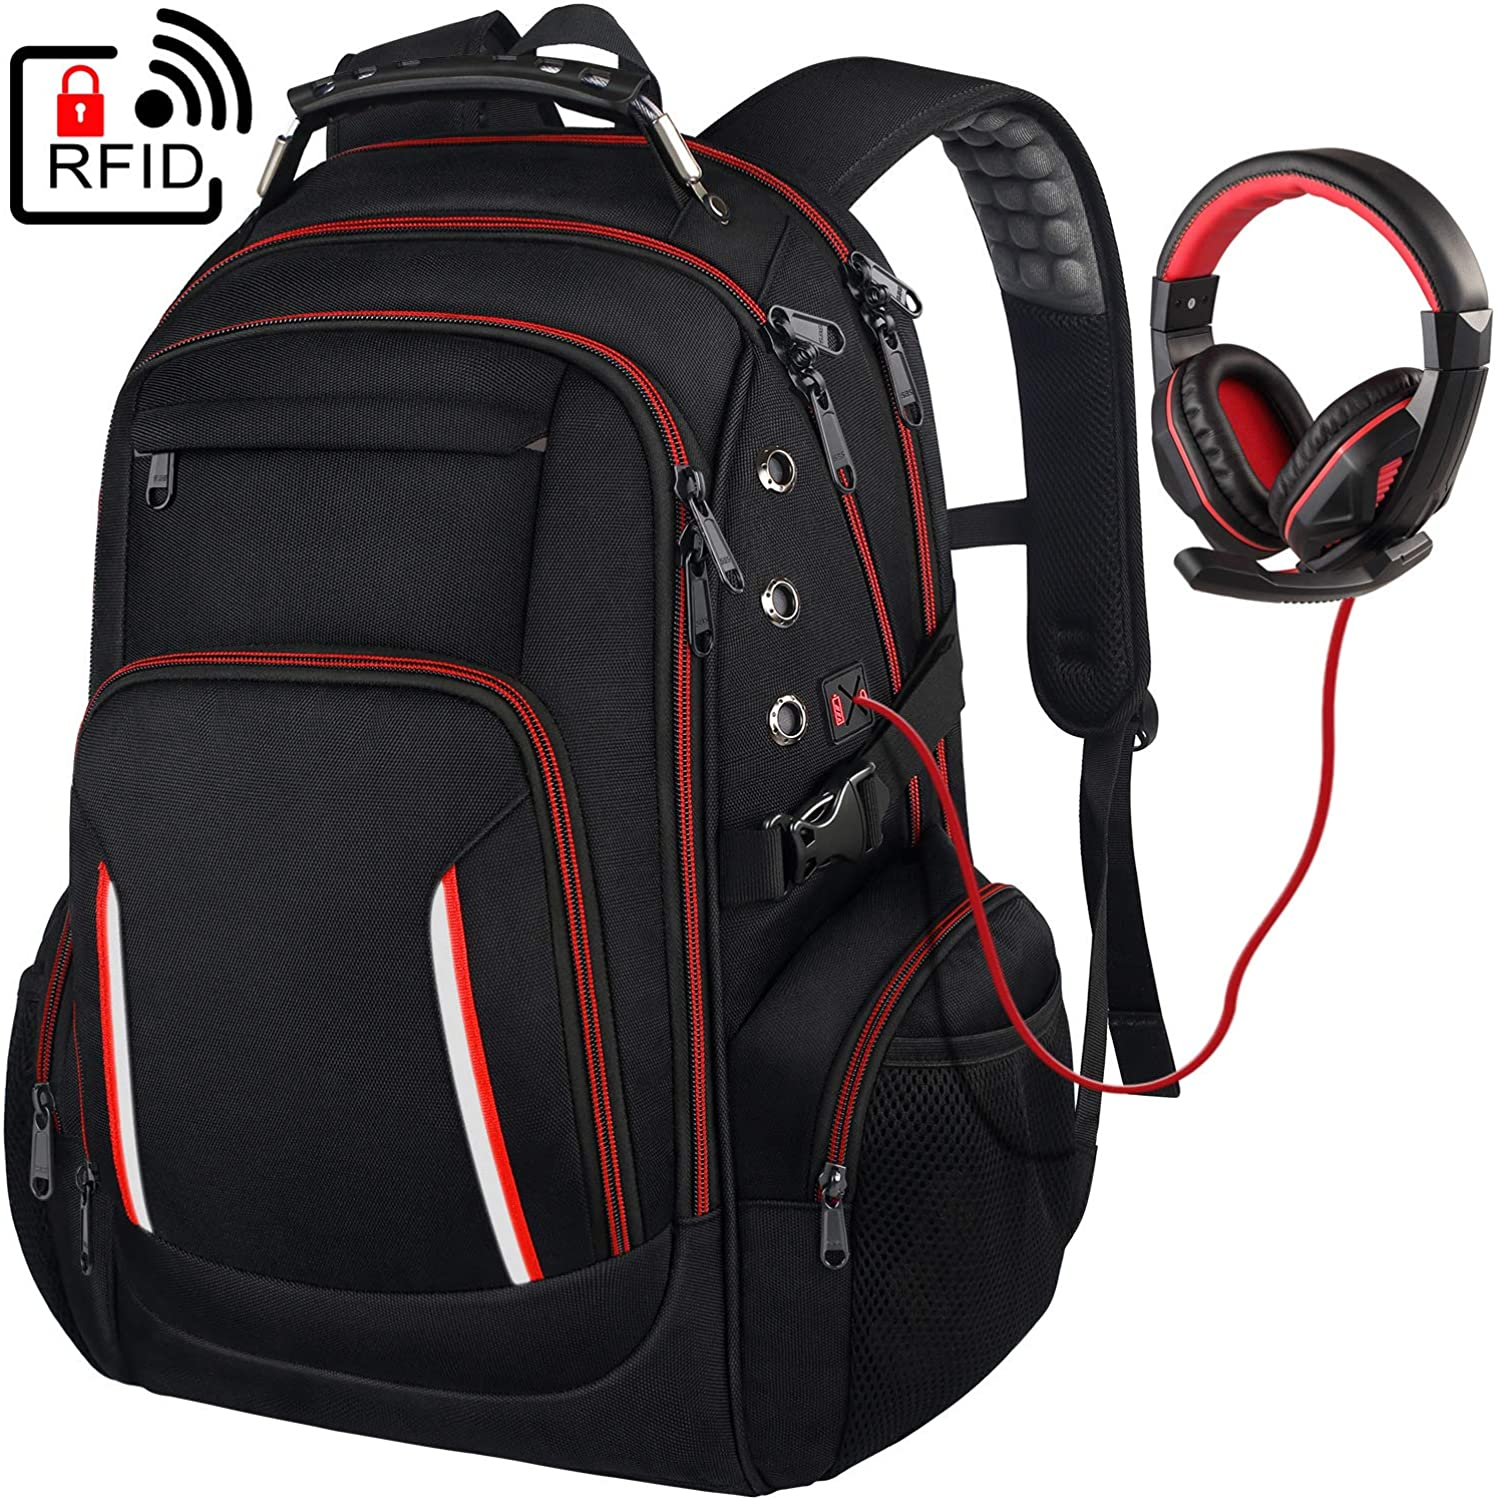 Large Laptop Backpack for Men, 15.6 17 17.3 Inch Computer Compartment Business Traveling Bookbag